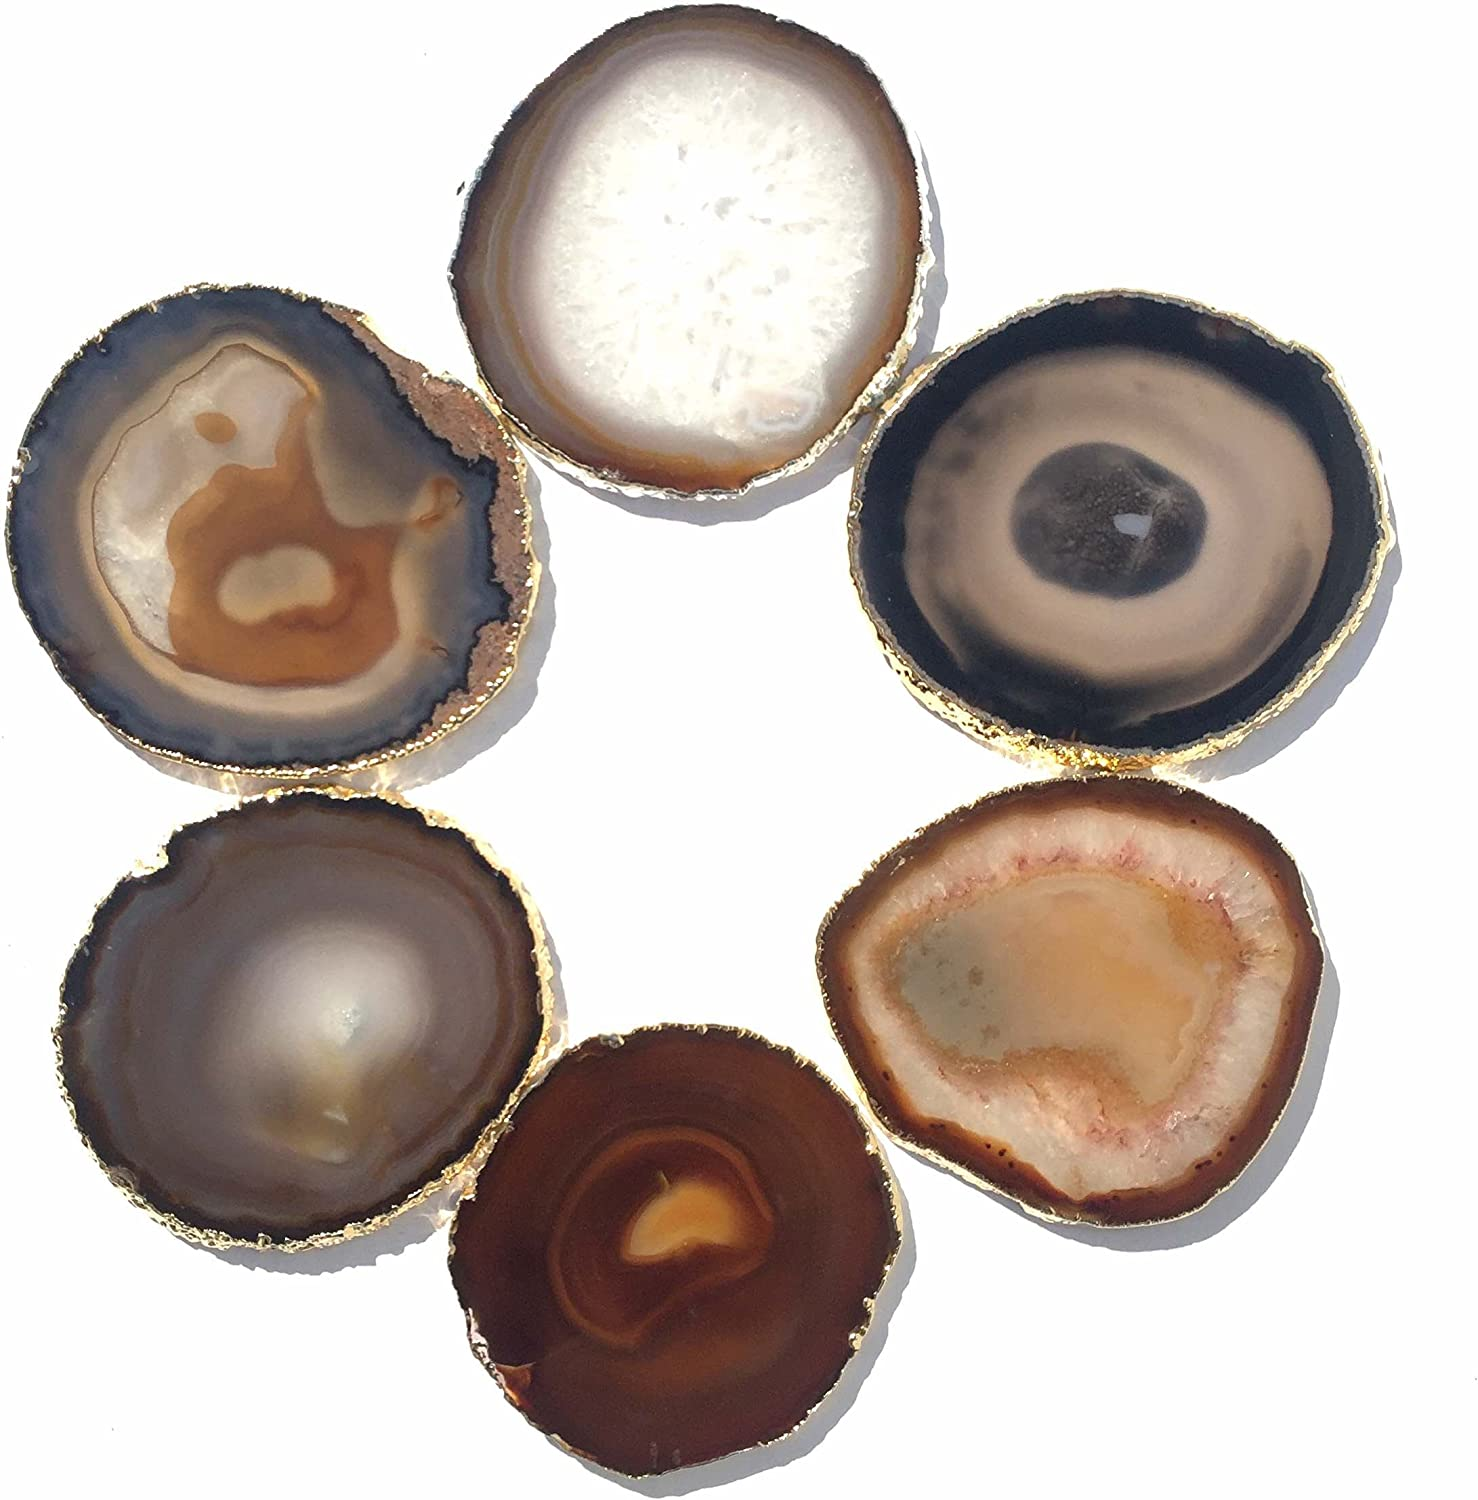 JIC Gem golden Plated Natural Agate Coasters, 6 pcs set, 3-4 , with Rubber Bumper